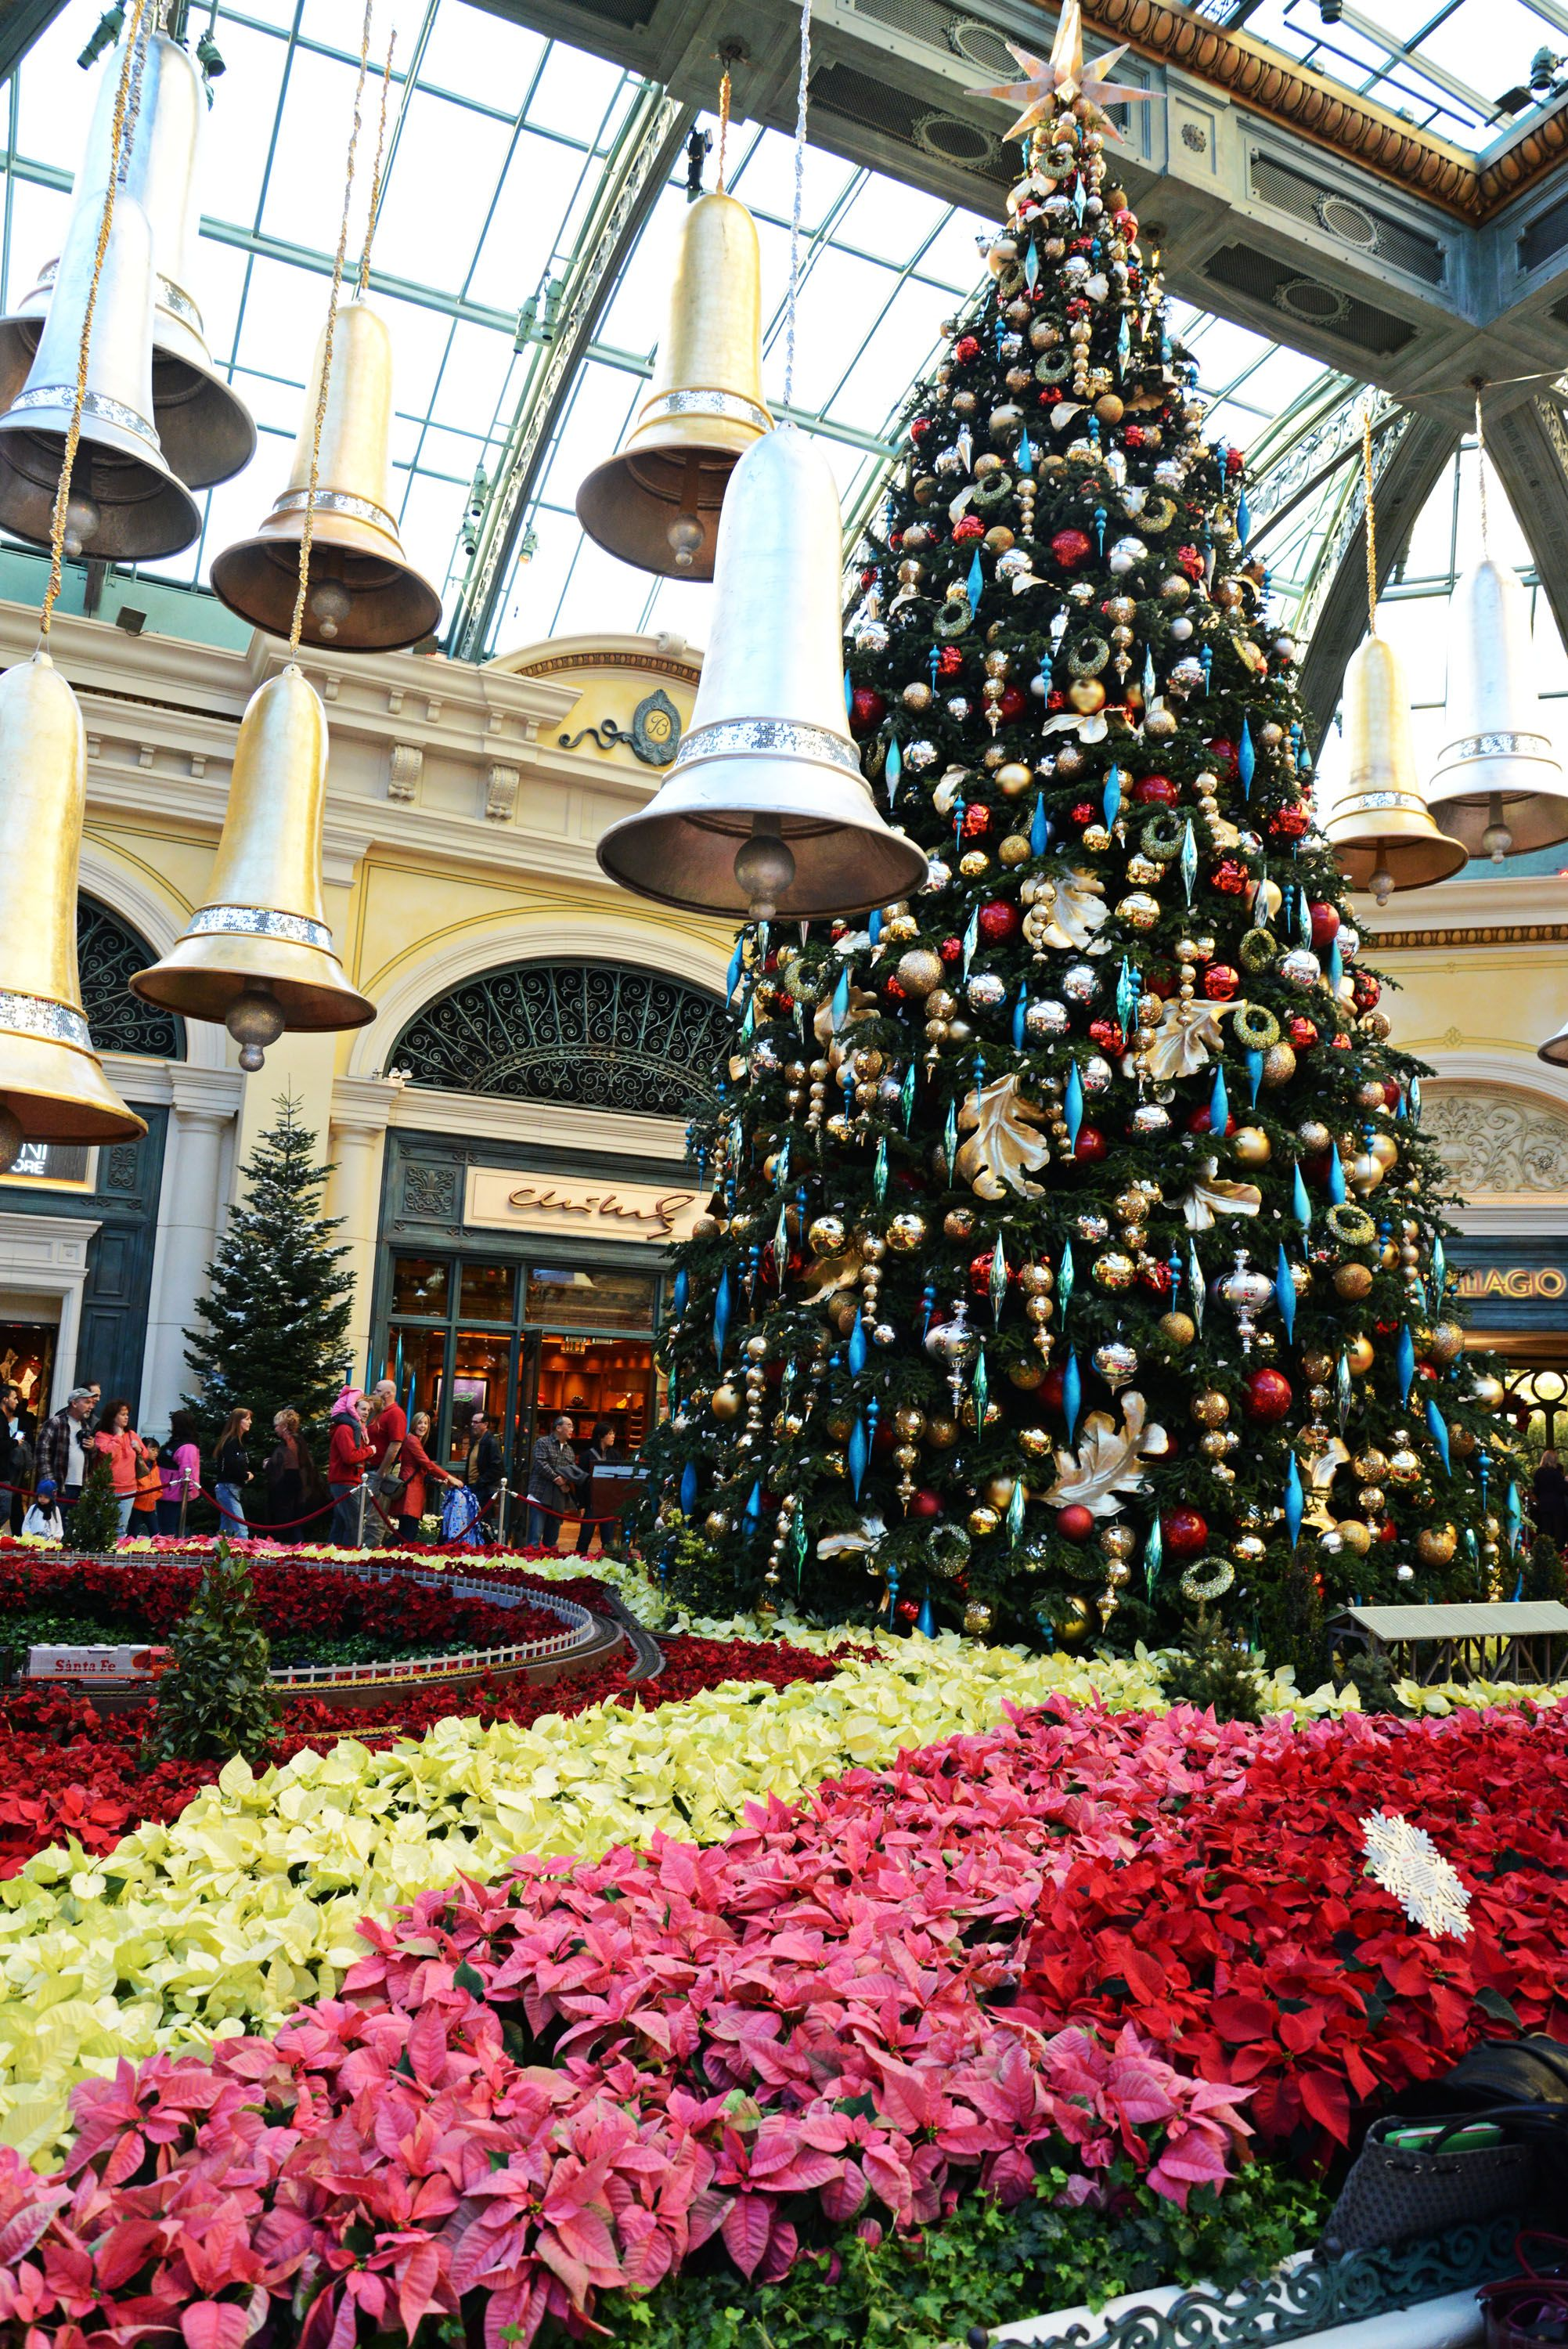 Las Vegas knows how to put on a show and Christmas is no